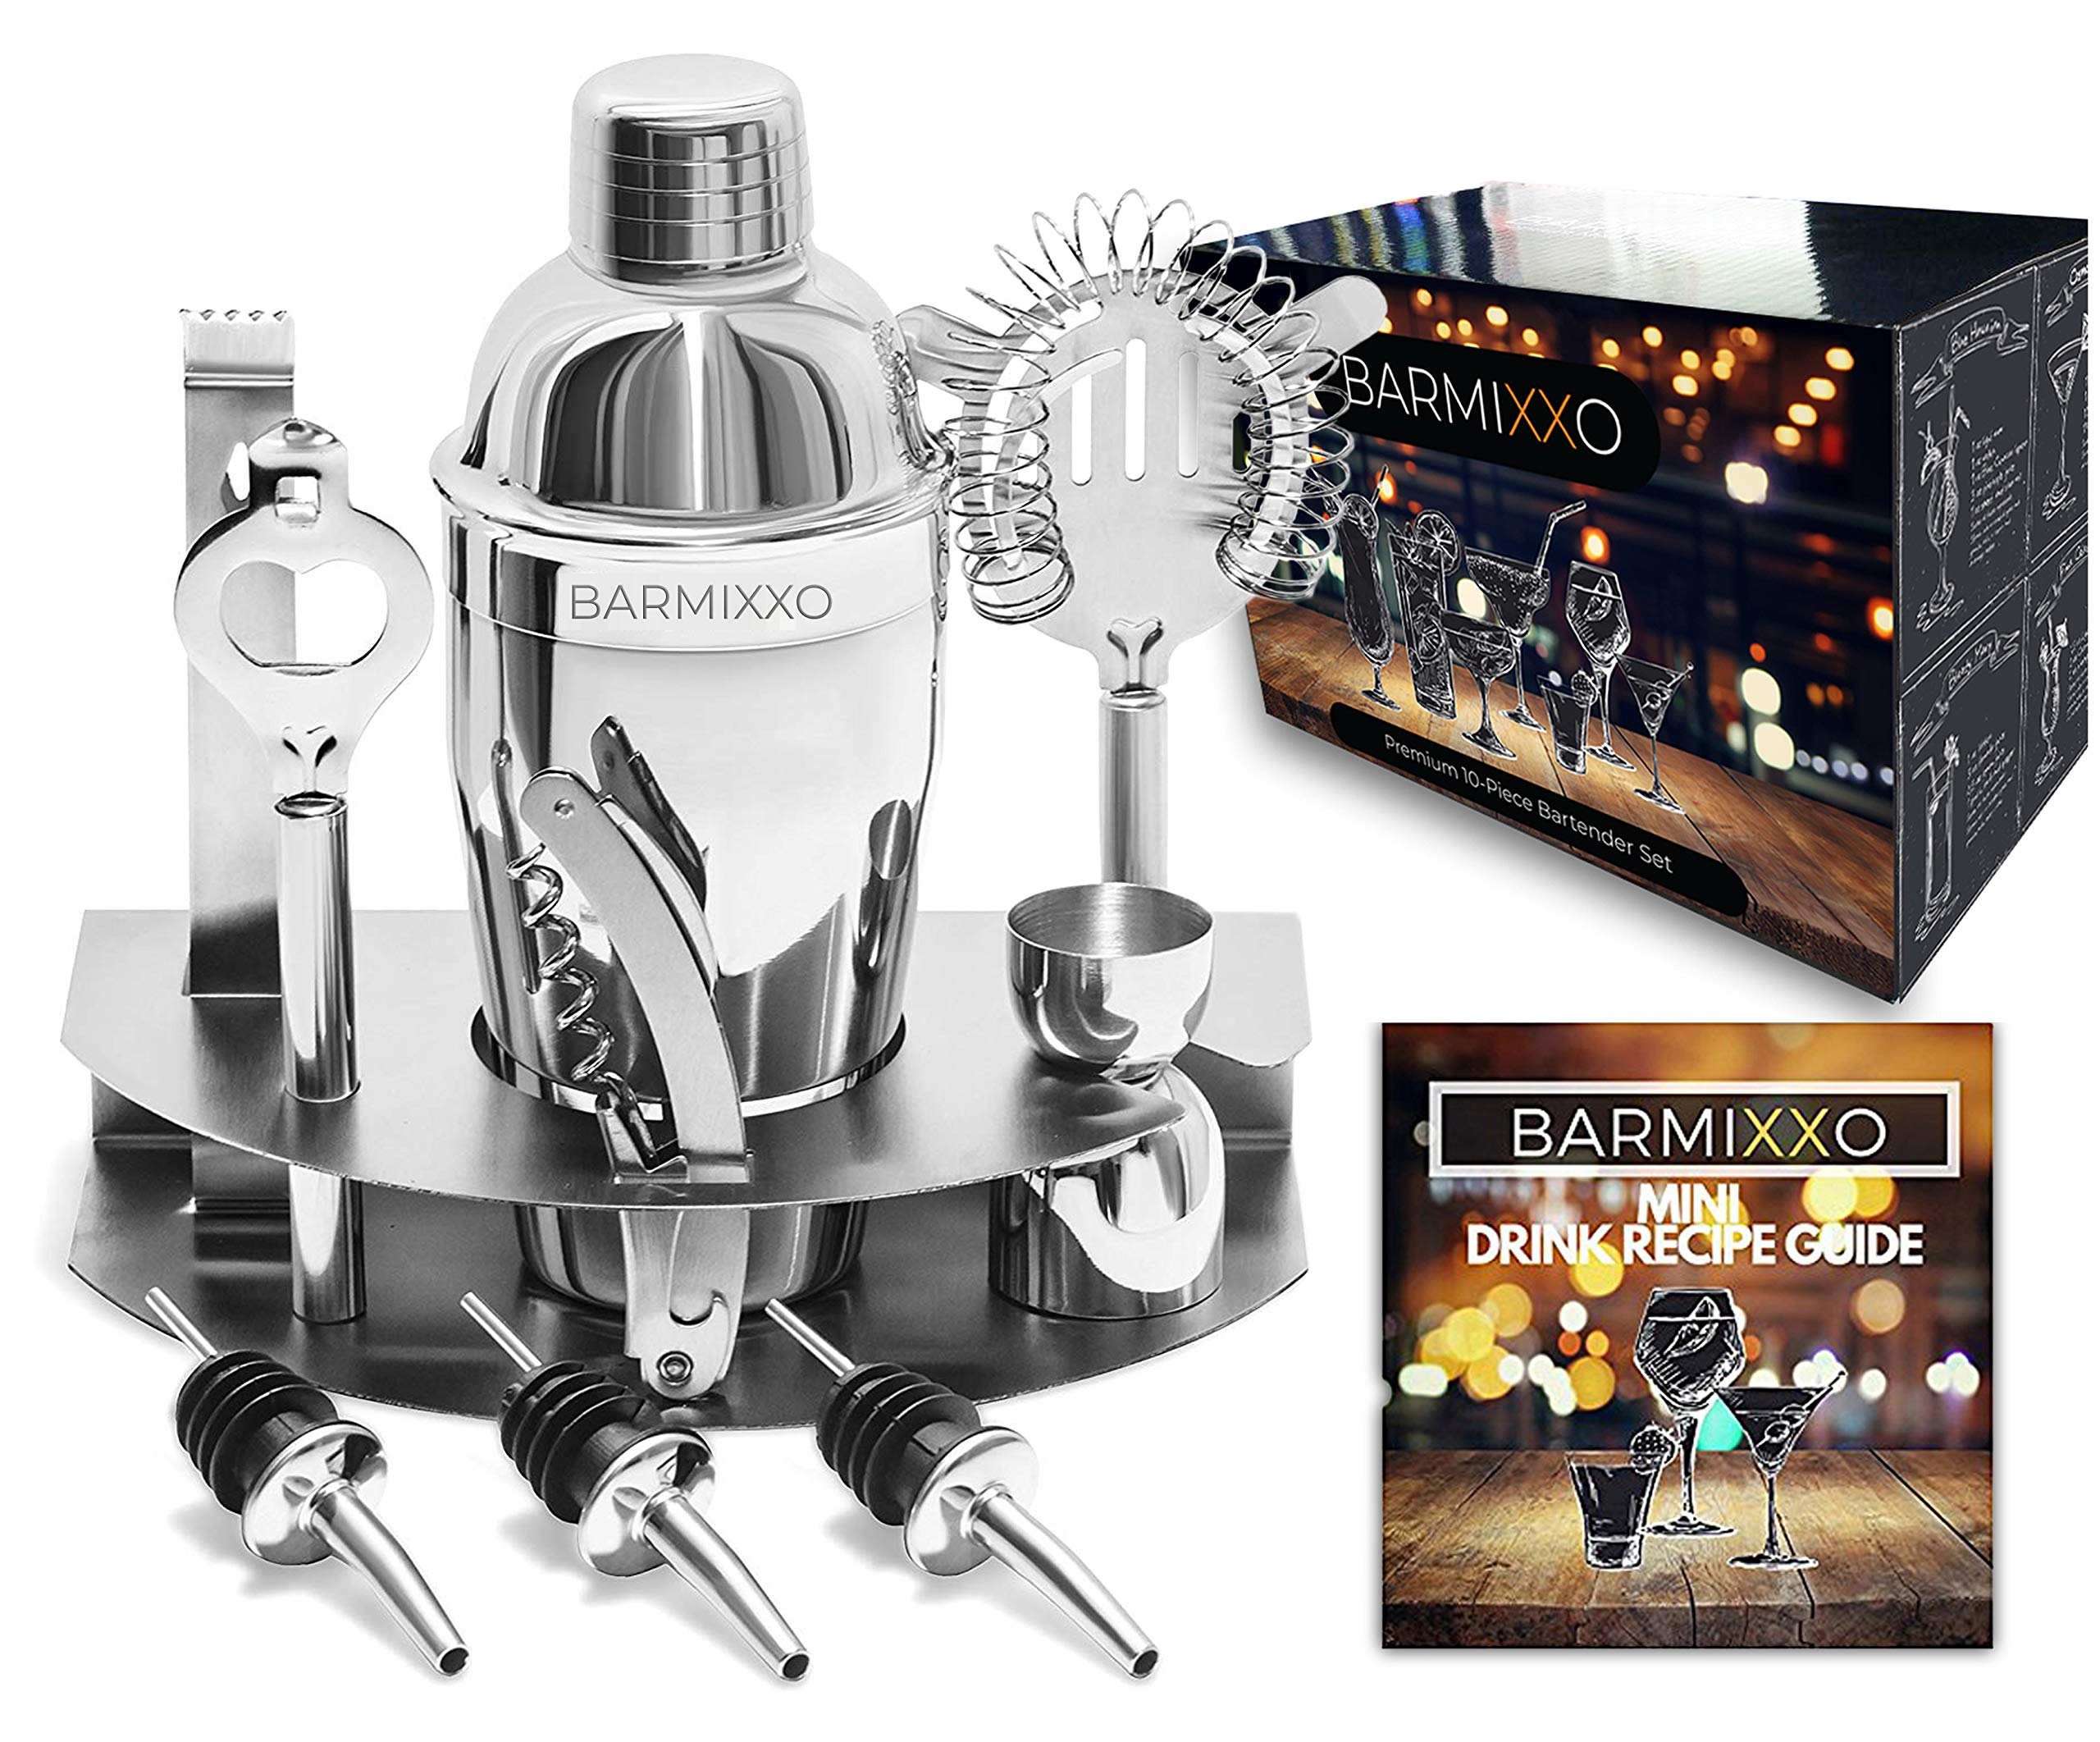 Home Cocktail Bar Set by BARMIXXO – Stainless Steel 10 Piece Mixology Tool Kit – With Bartender's Professional Shaker, Strainer, Jigger, Liquor Pourers and More/Mini Guide and 150 + Recipe EBOOK